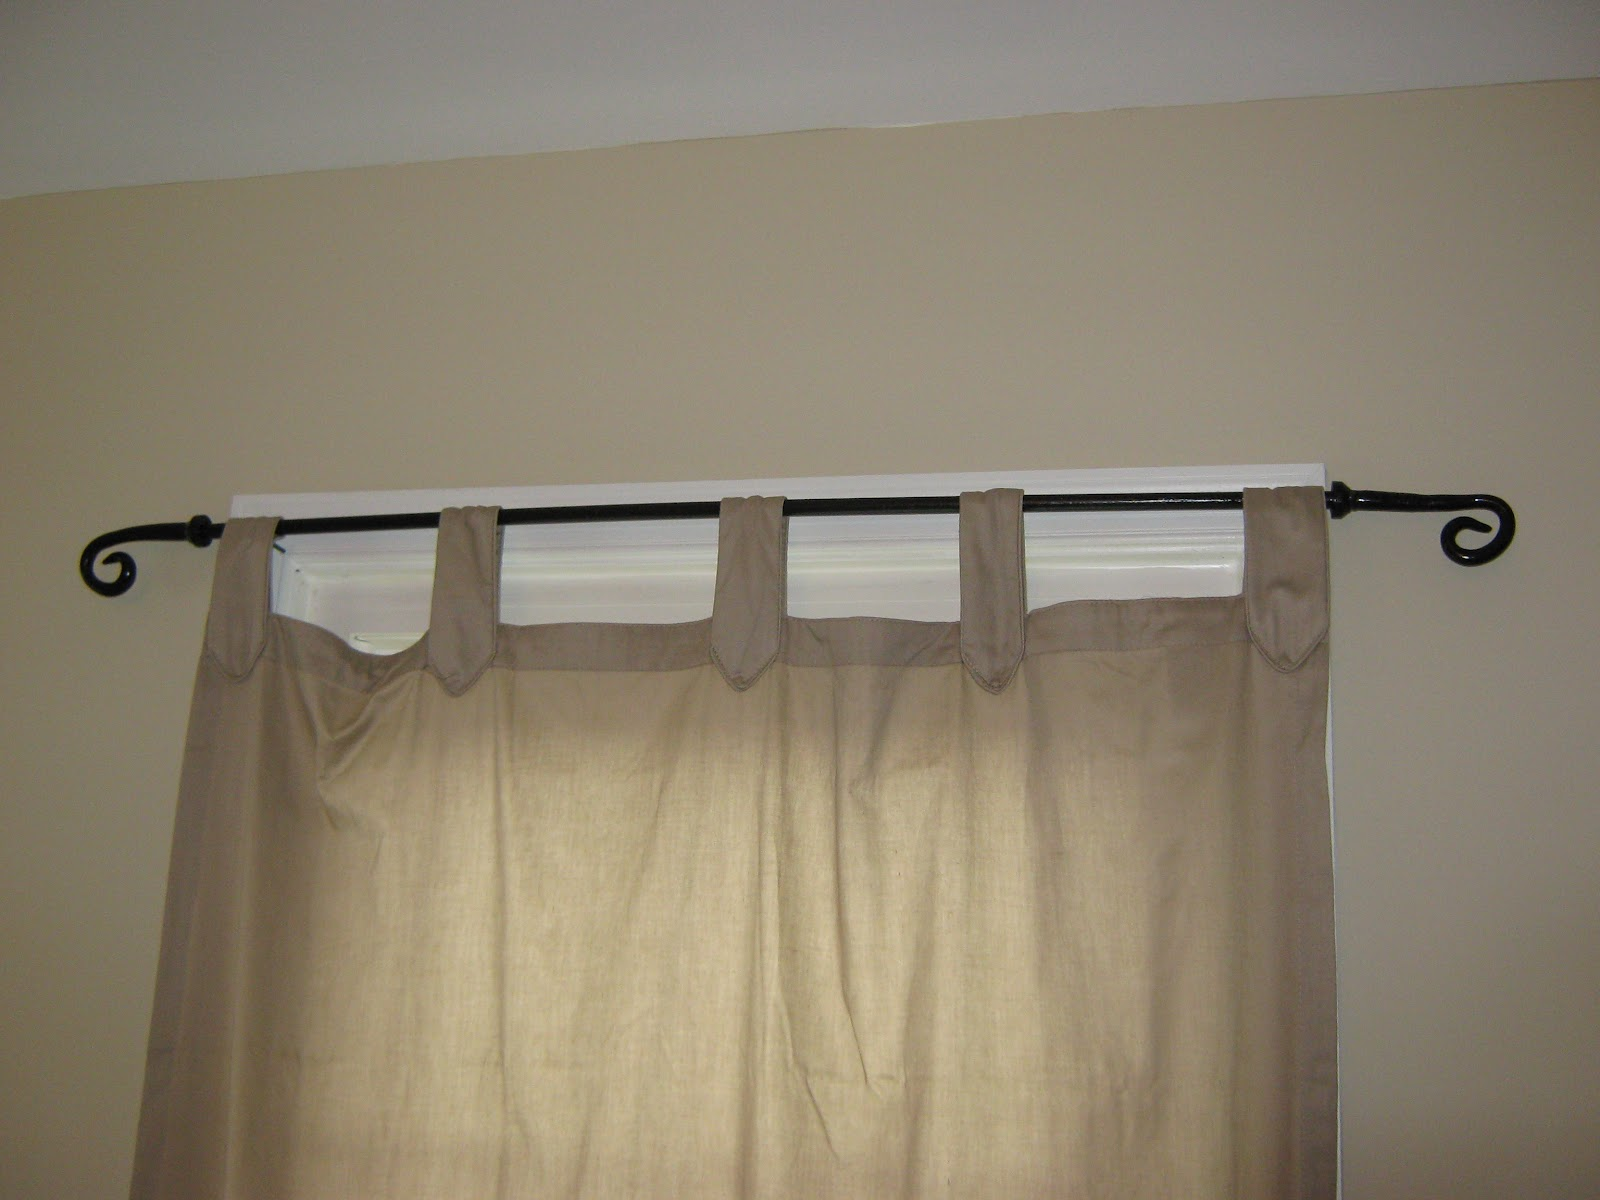 fake it frugal pottery barn cast iron curtain rods